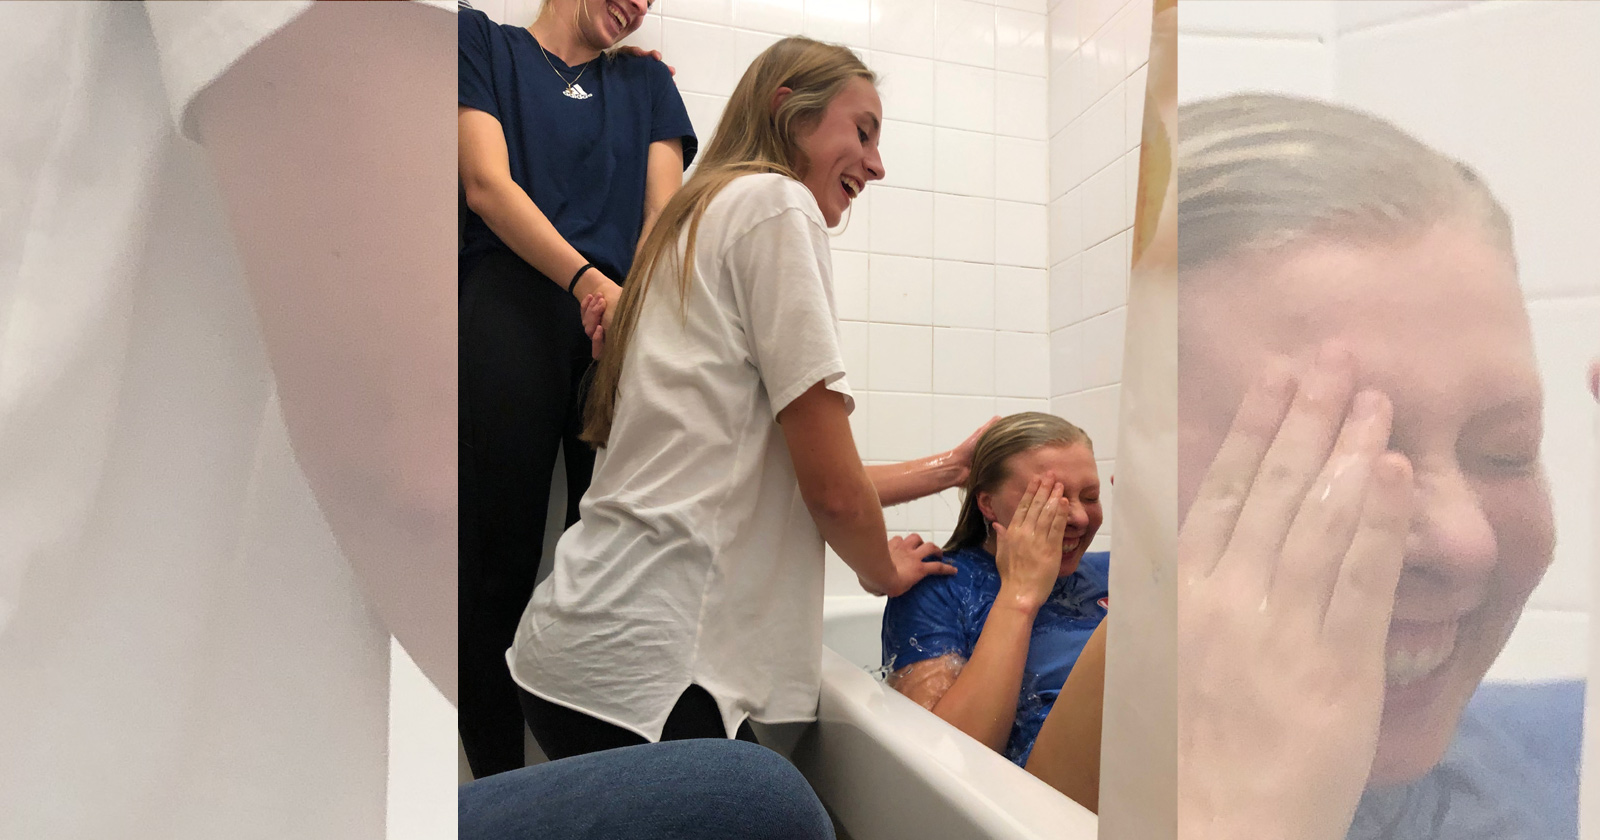 I got baptized in my hall bathroom (!). It was the best day of my life.